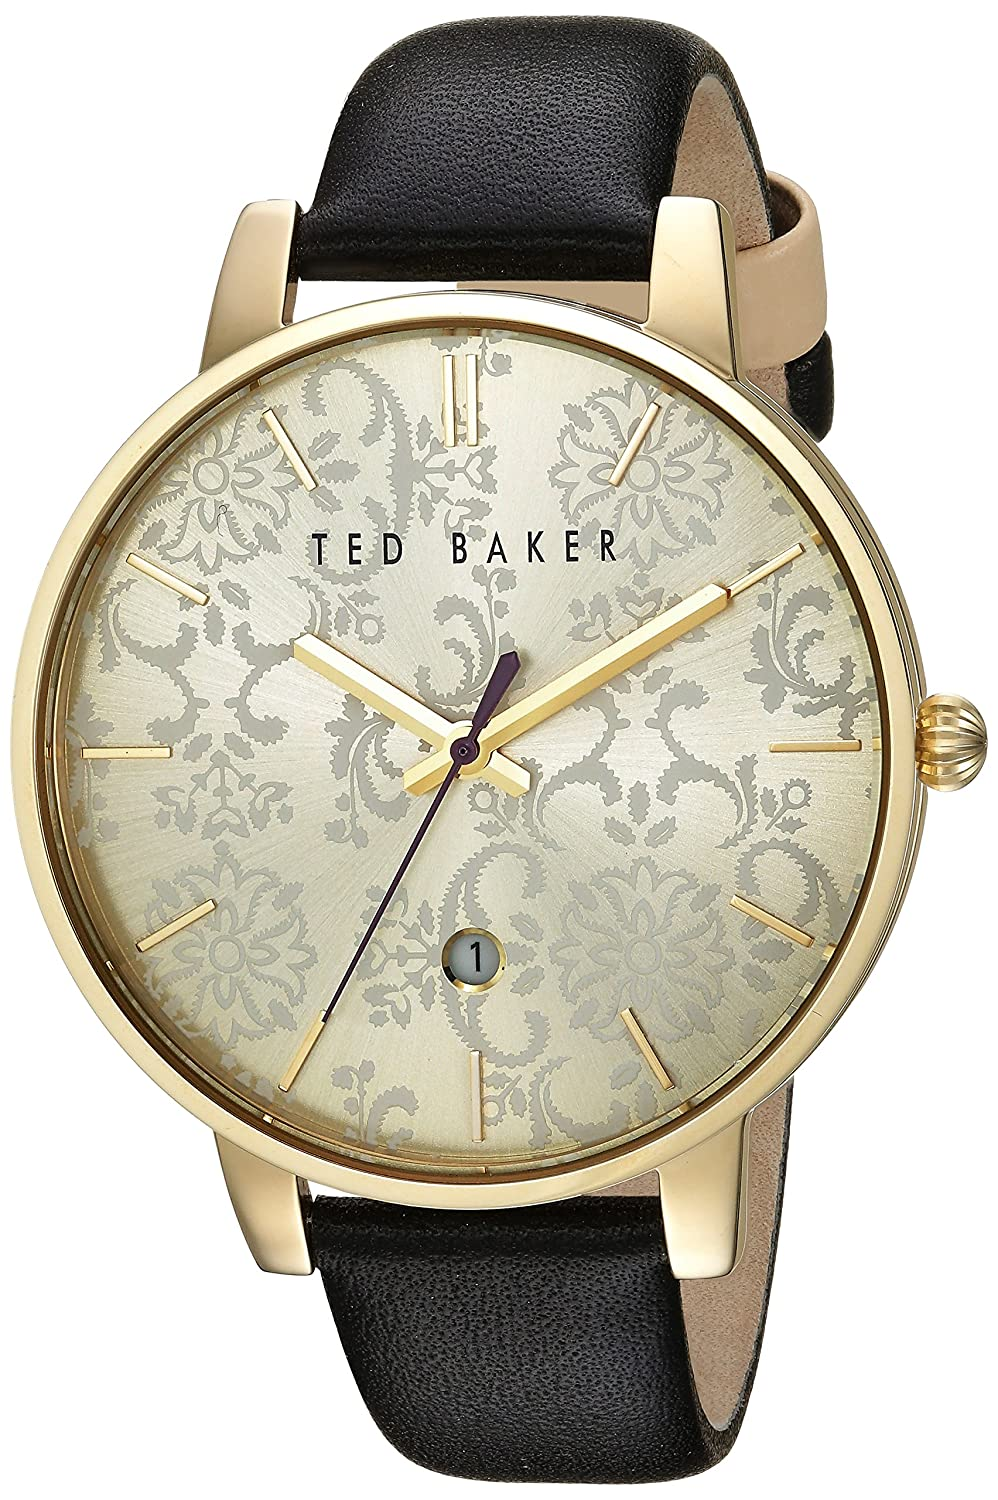 Damen Damen Gold Tone Quarz Akku Ted Baker Fashion Uhr an Lederband mit Datum. te10030694